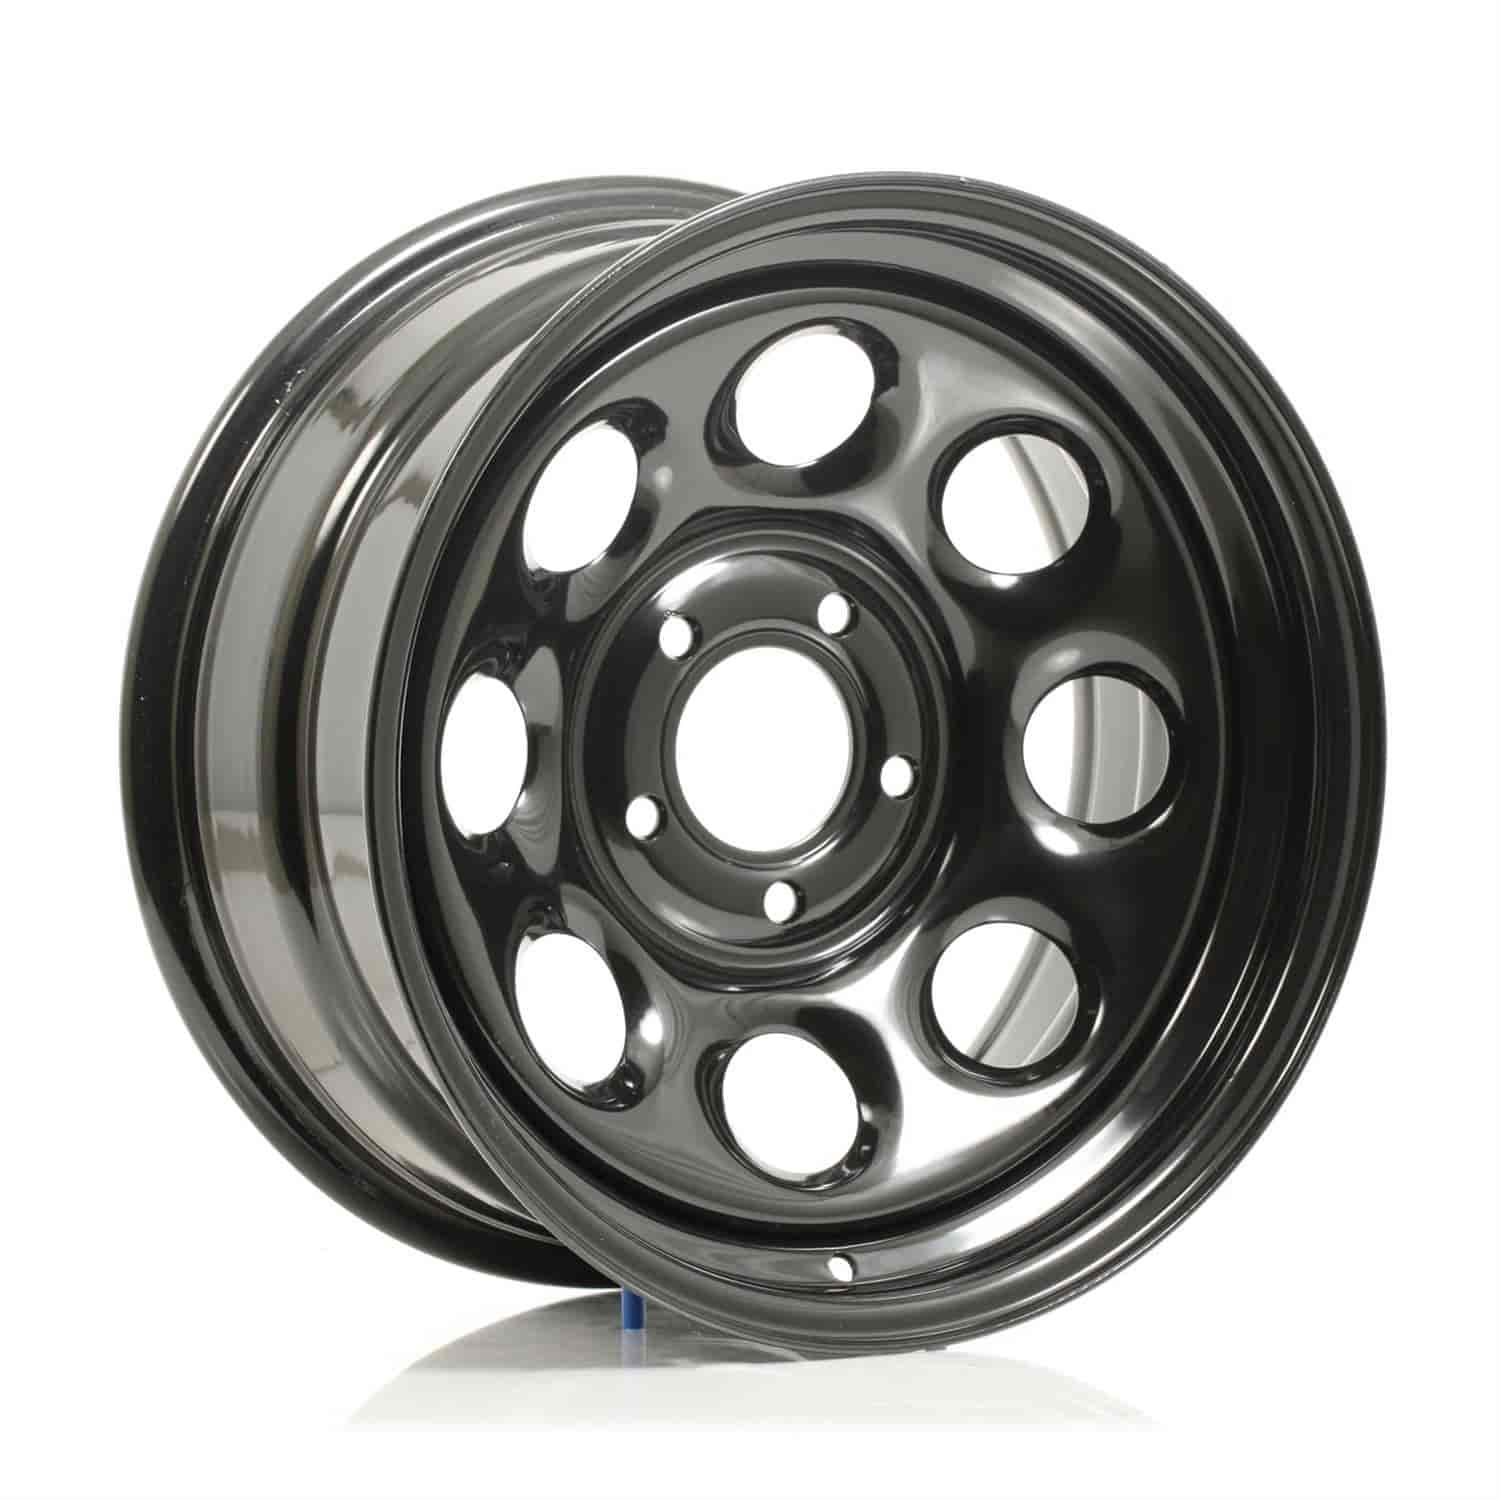 Cragar 3978834 - Cragar Black Soft 8 Wheels